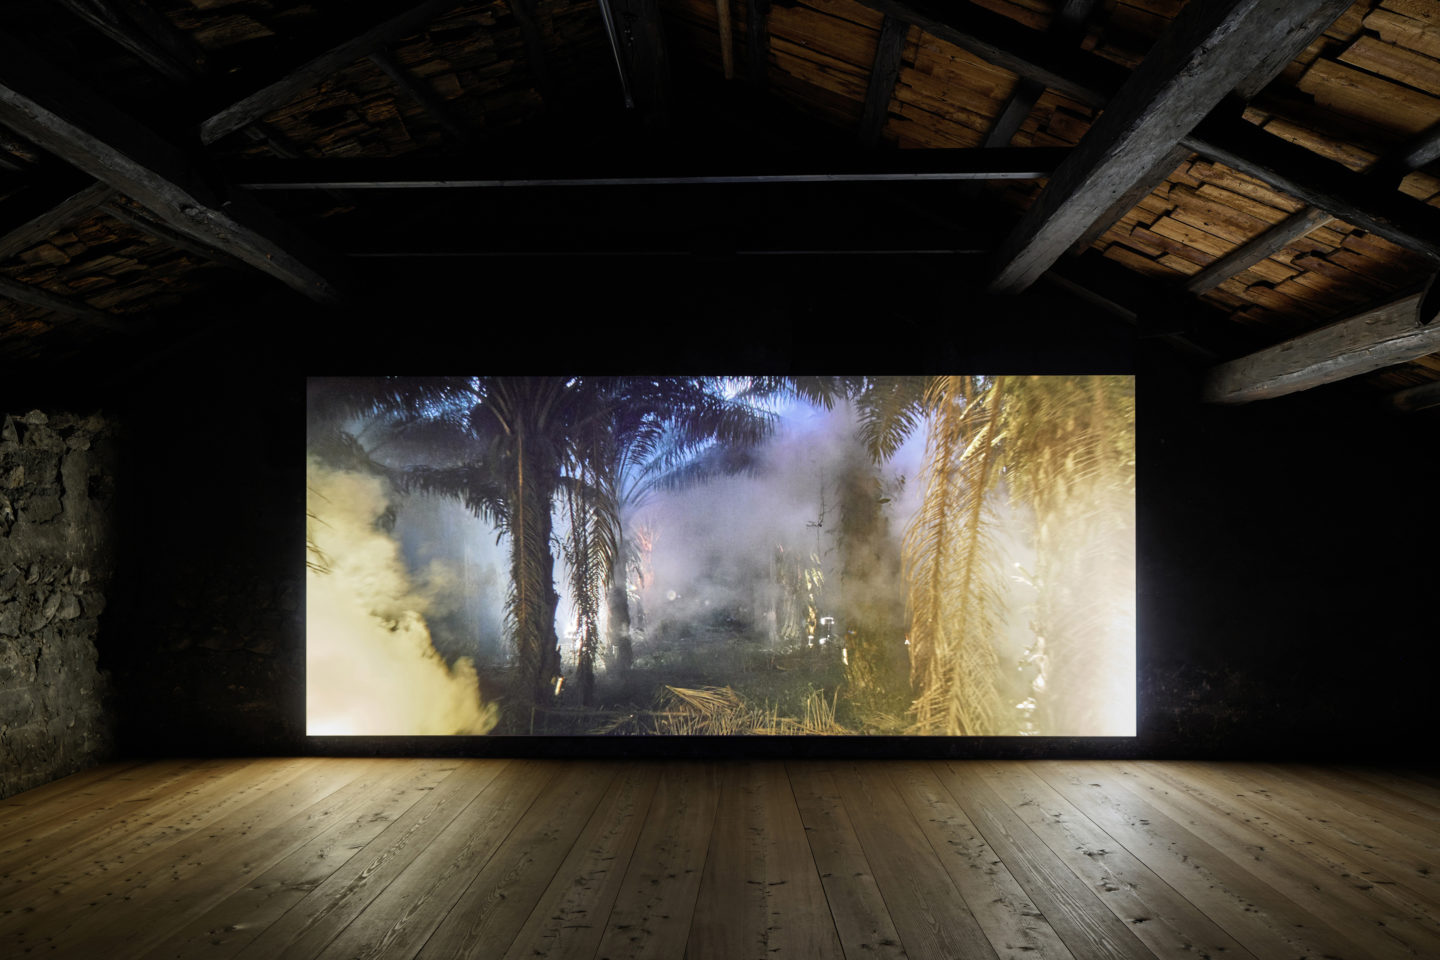 Installation View Julian Charrière Soloshow «Ever Since We Crawled Out / view on An Invitaton to Disappear, 2018» at Galerie Tschudi, Zuoz / Photo: Ralph Feiner / Courtesy: the artist and Galerie Tschudi, Zuoz